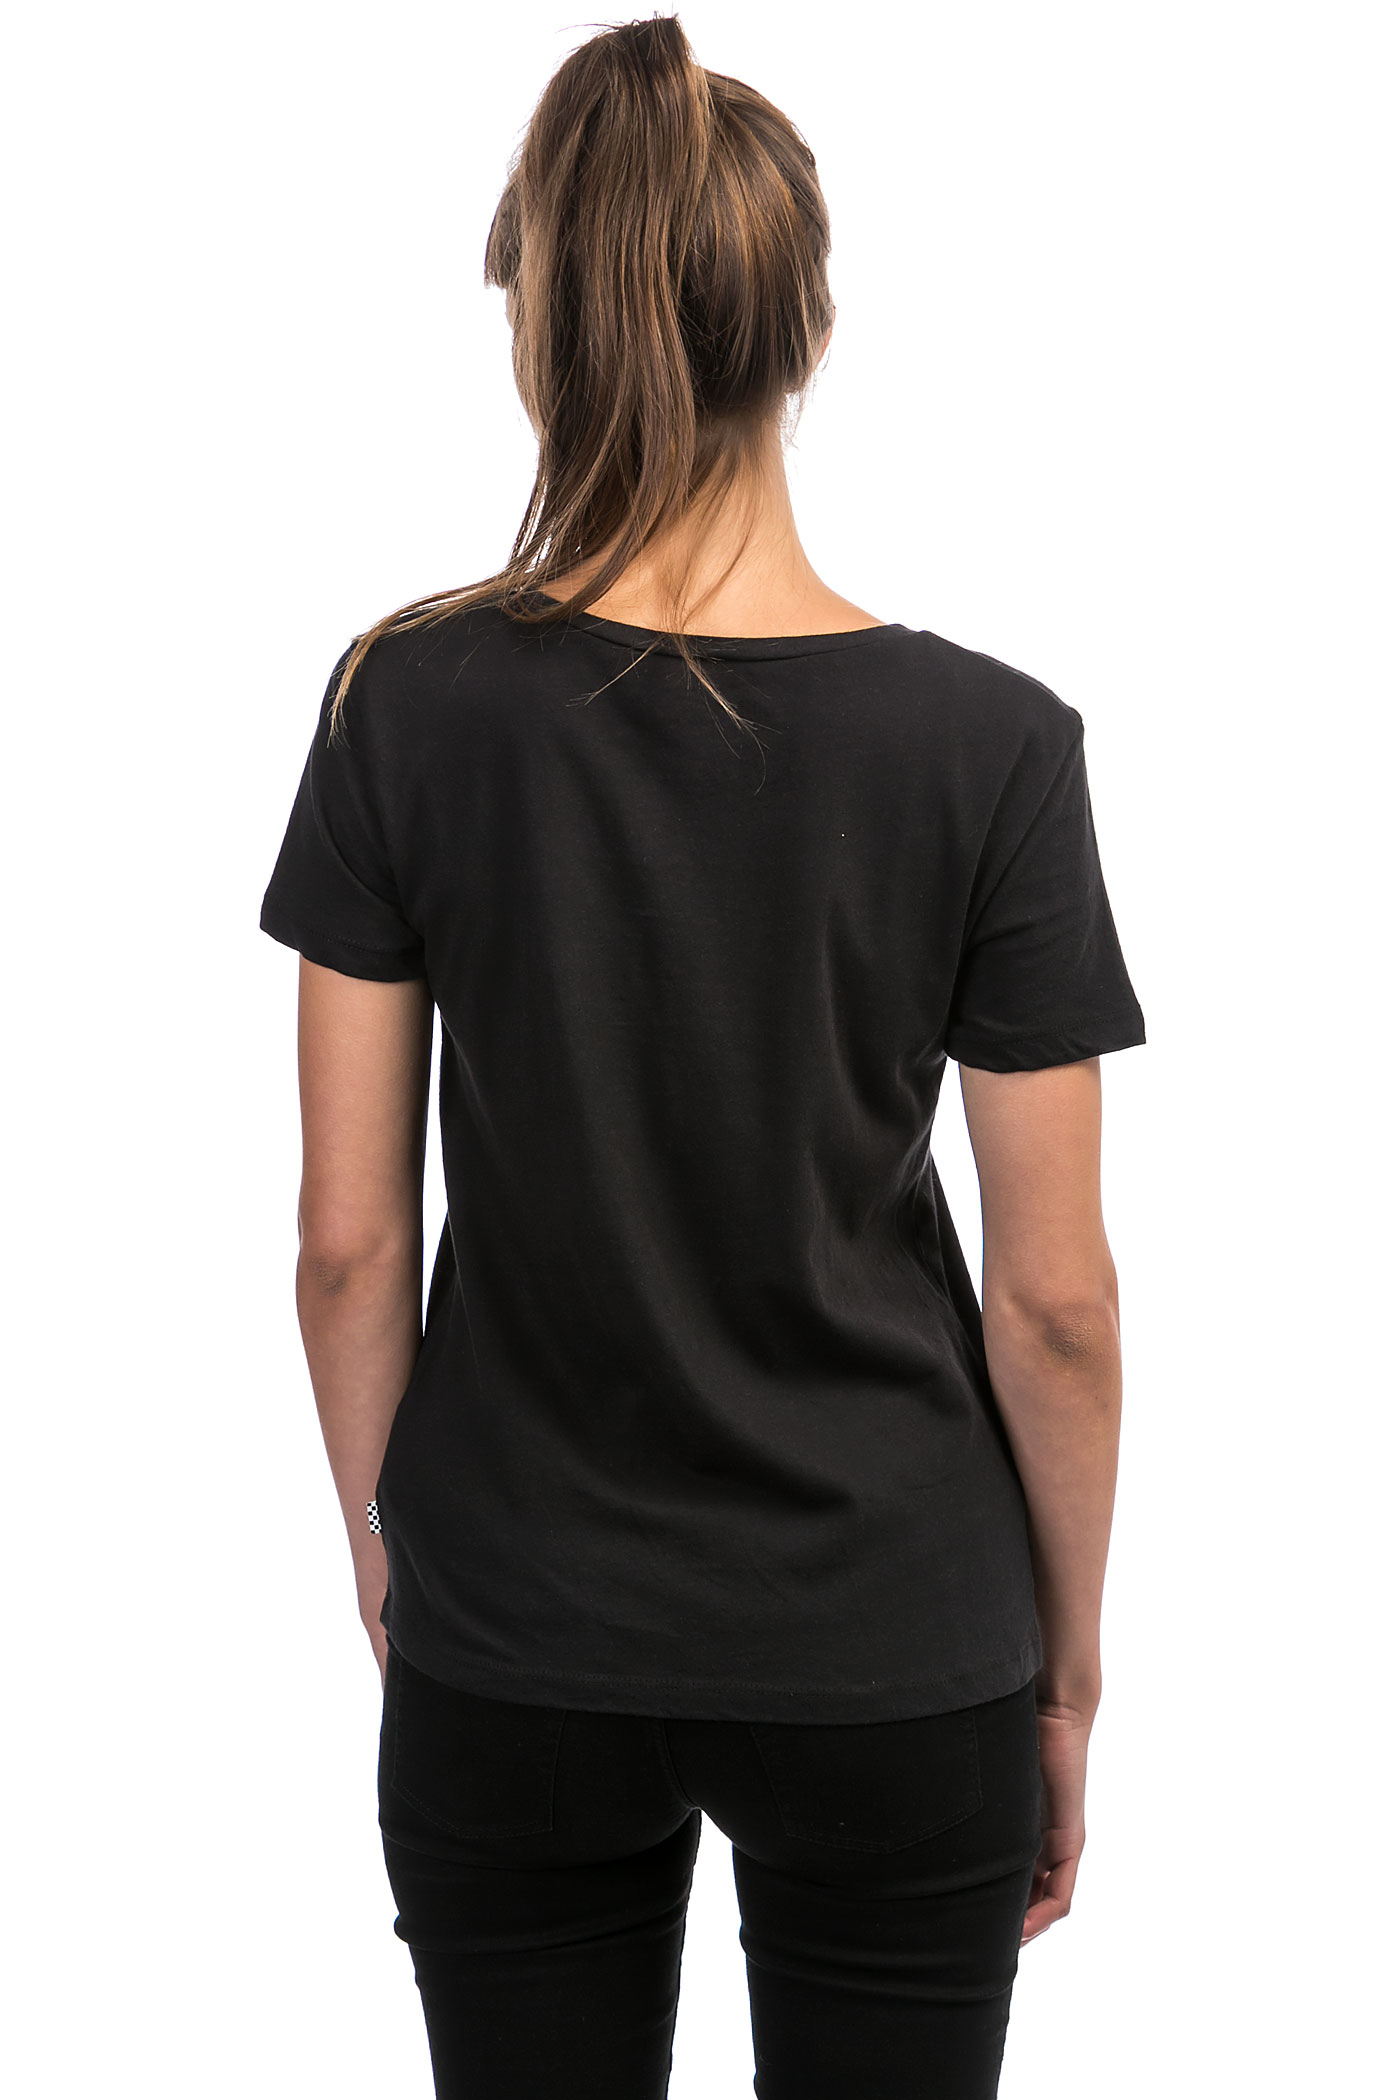 Vans Flying V T-Shirt women (black) koop bij skatedeluxe Vans T Shirt For Girls